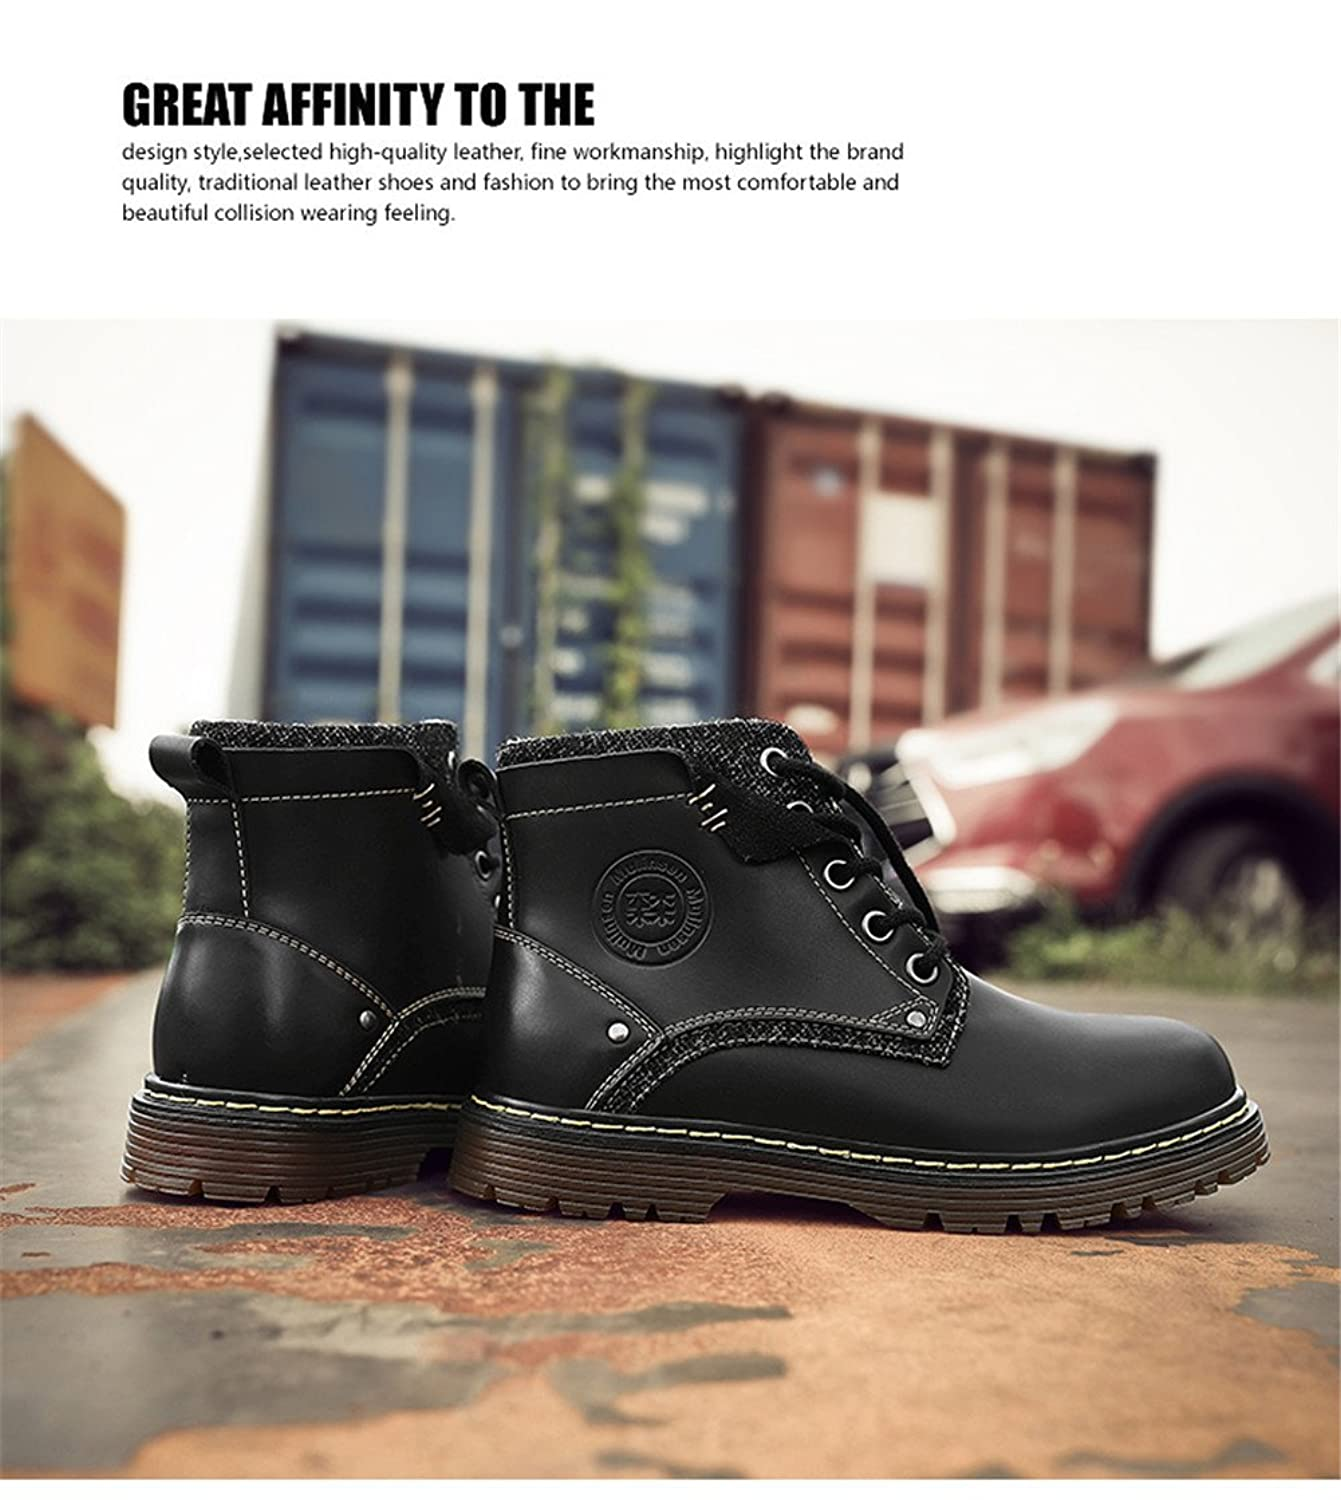 blog comfortable footnotes most support double vionic shoes s comforter stephen arch mens men women strap with dress for healthy monk